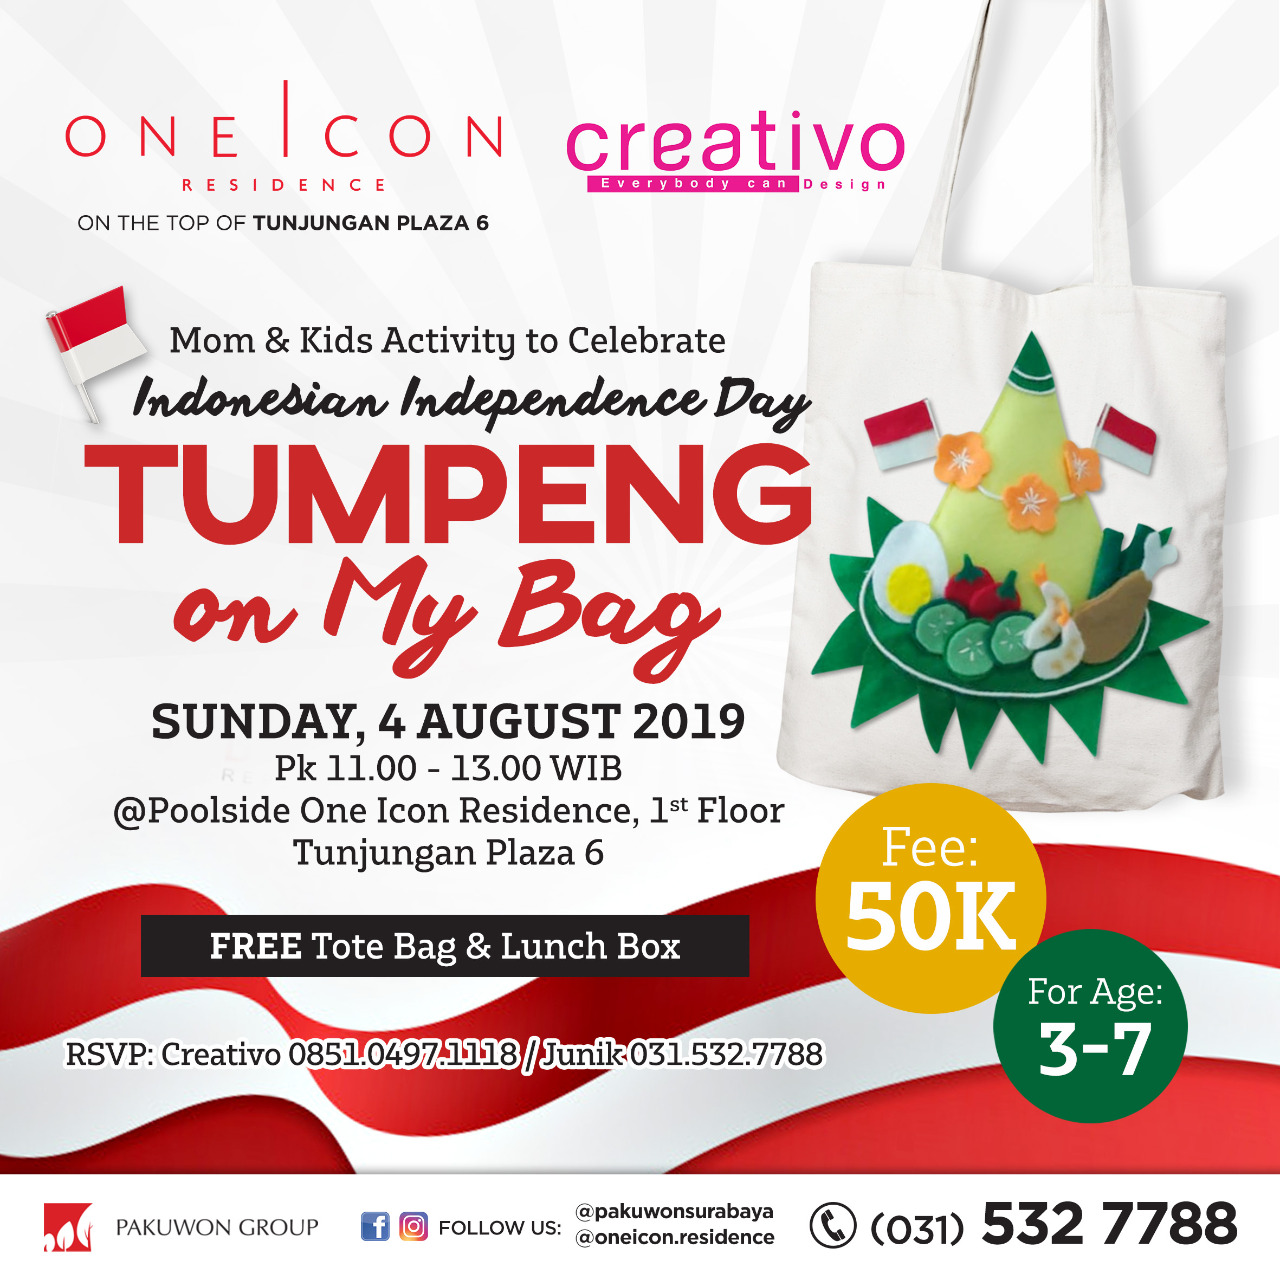 Indonesian Independence Day Tumpeng on My Bag at One Icon Residence